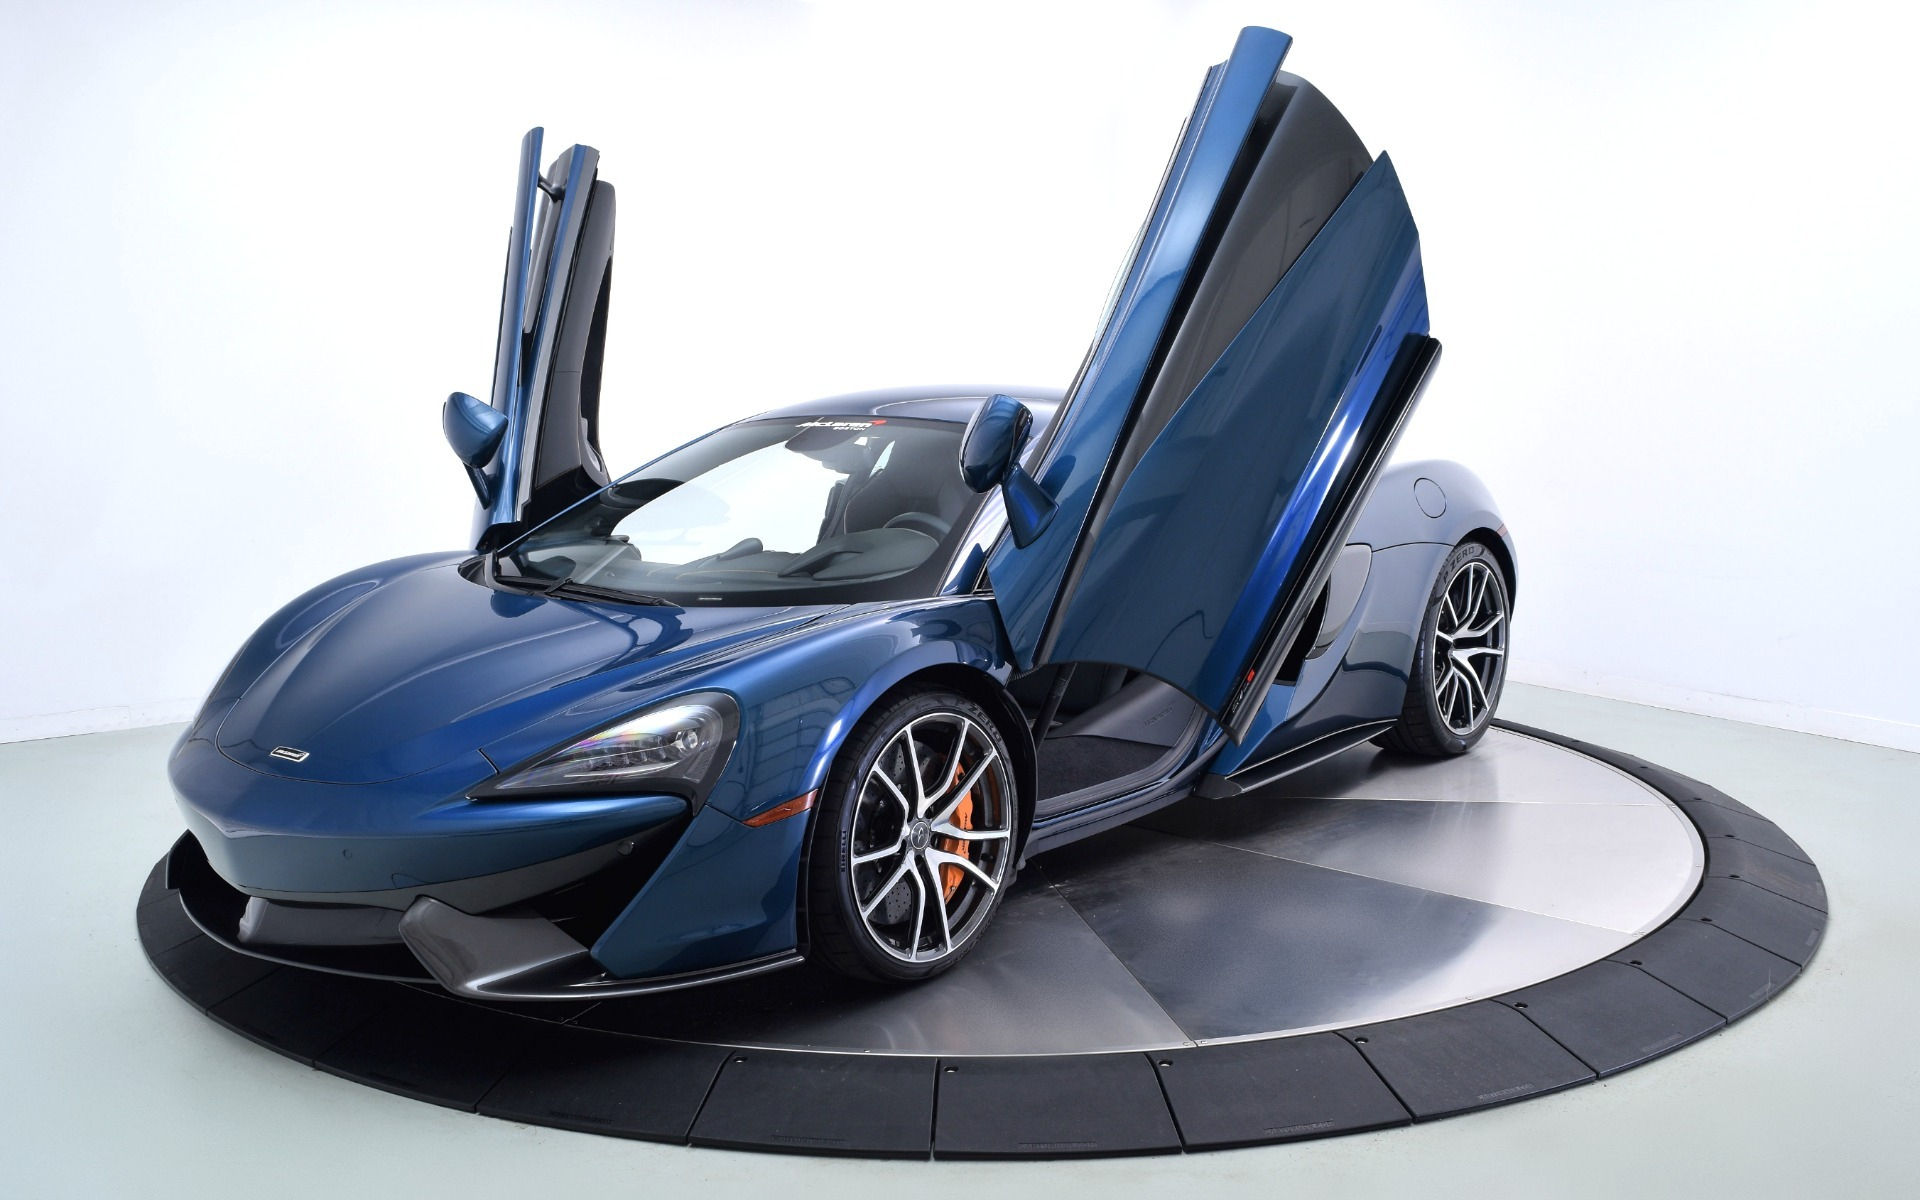 2017 mclaren 570s for sale in norwell  ma 001846